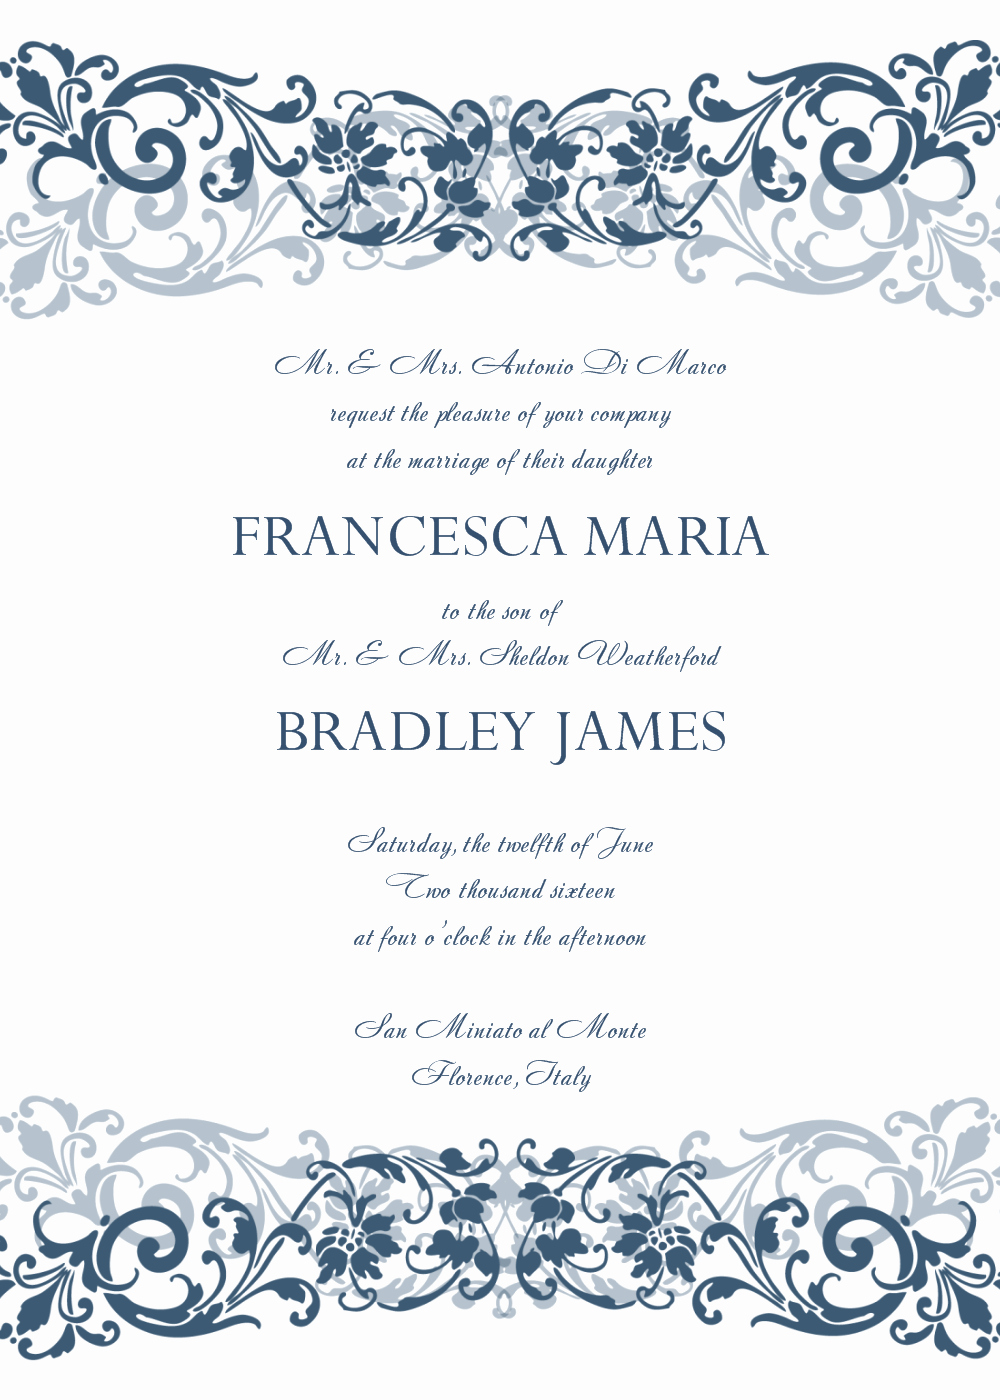 Wedding Invitation Word Template Awesome 8 Free Wedding Invitation Templates Excel Pdf formats